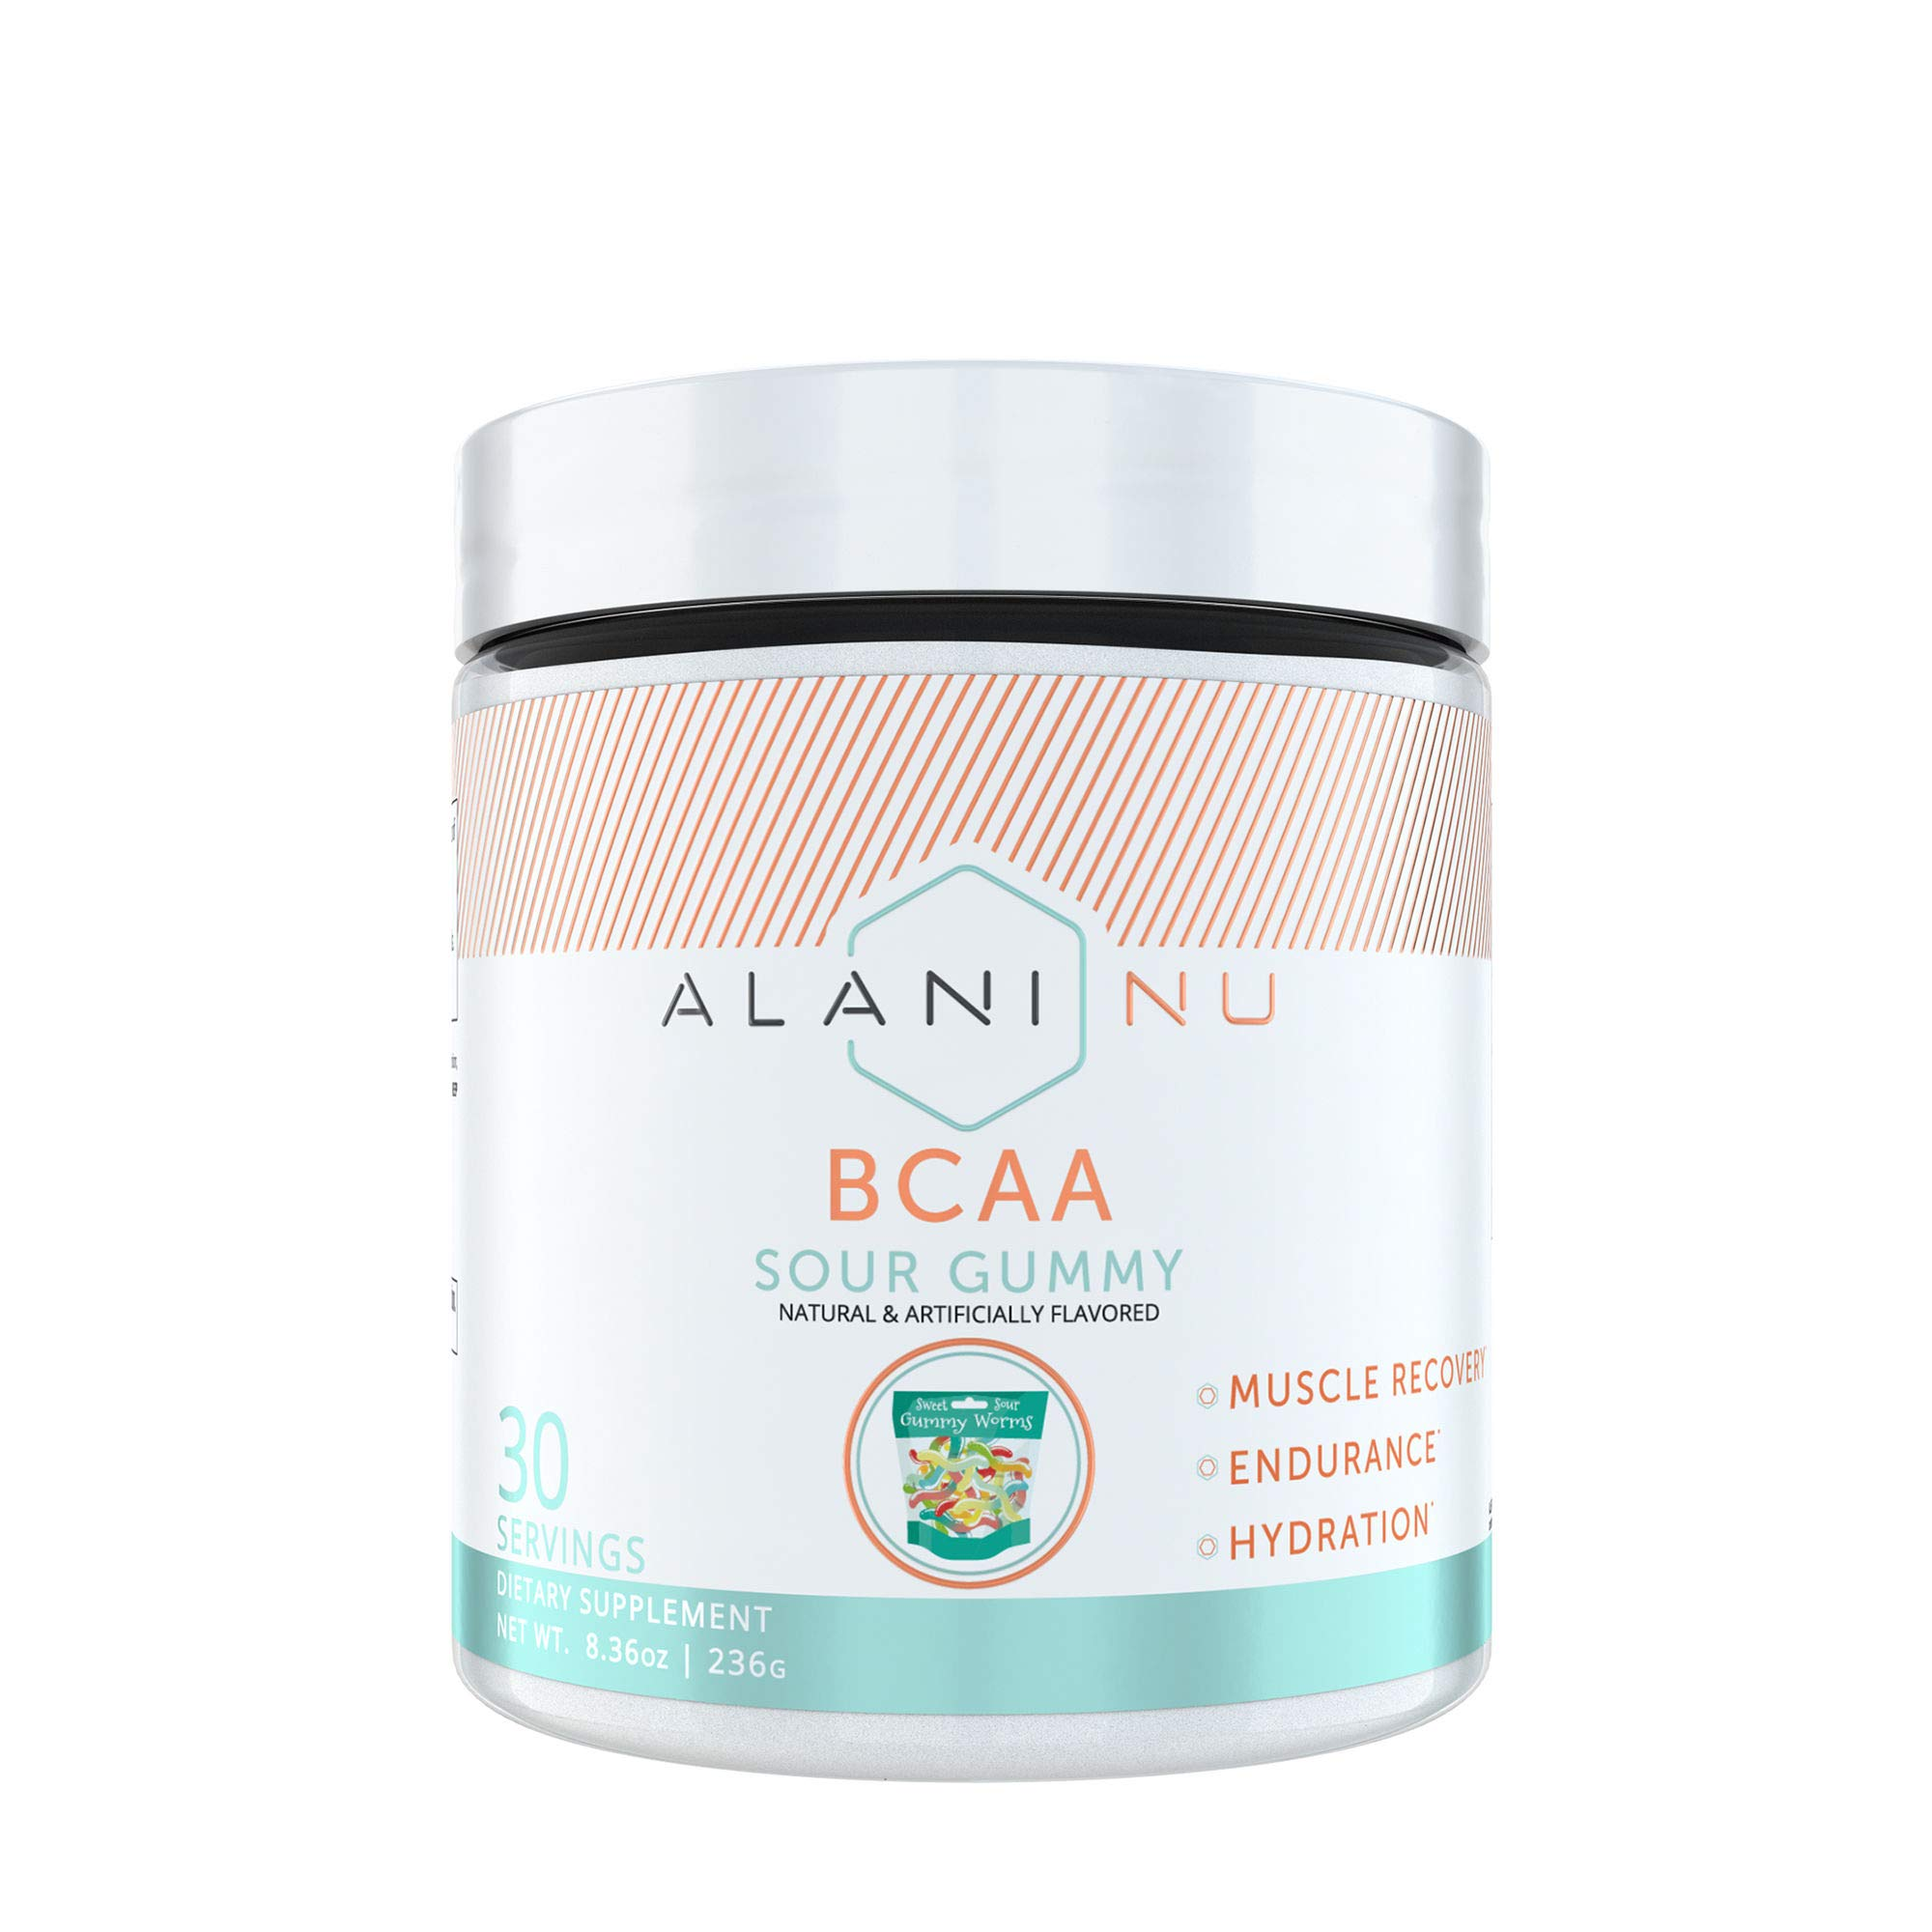 Alani Nu BCAA Branched Chain Essential Amino Acids Powder, Sour Gummy, 30 Servings